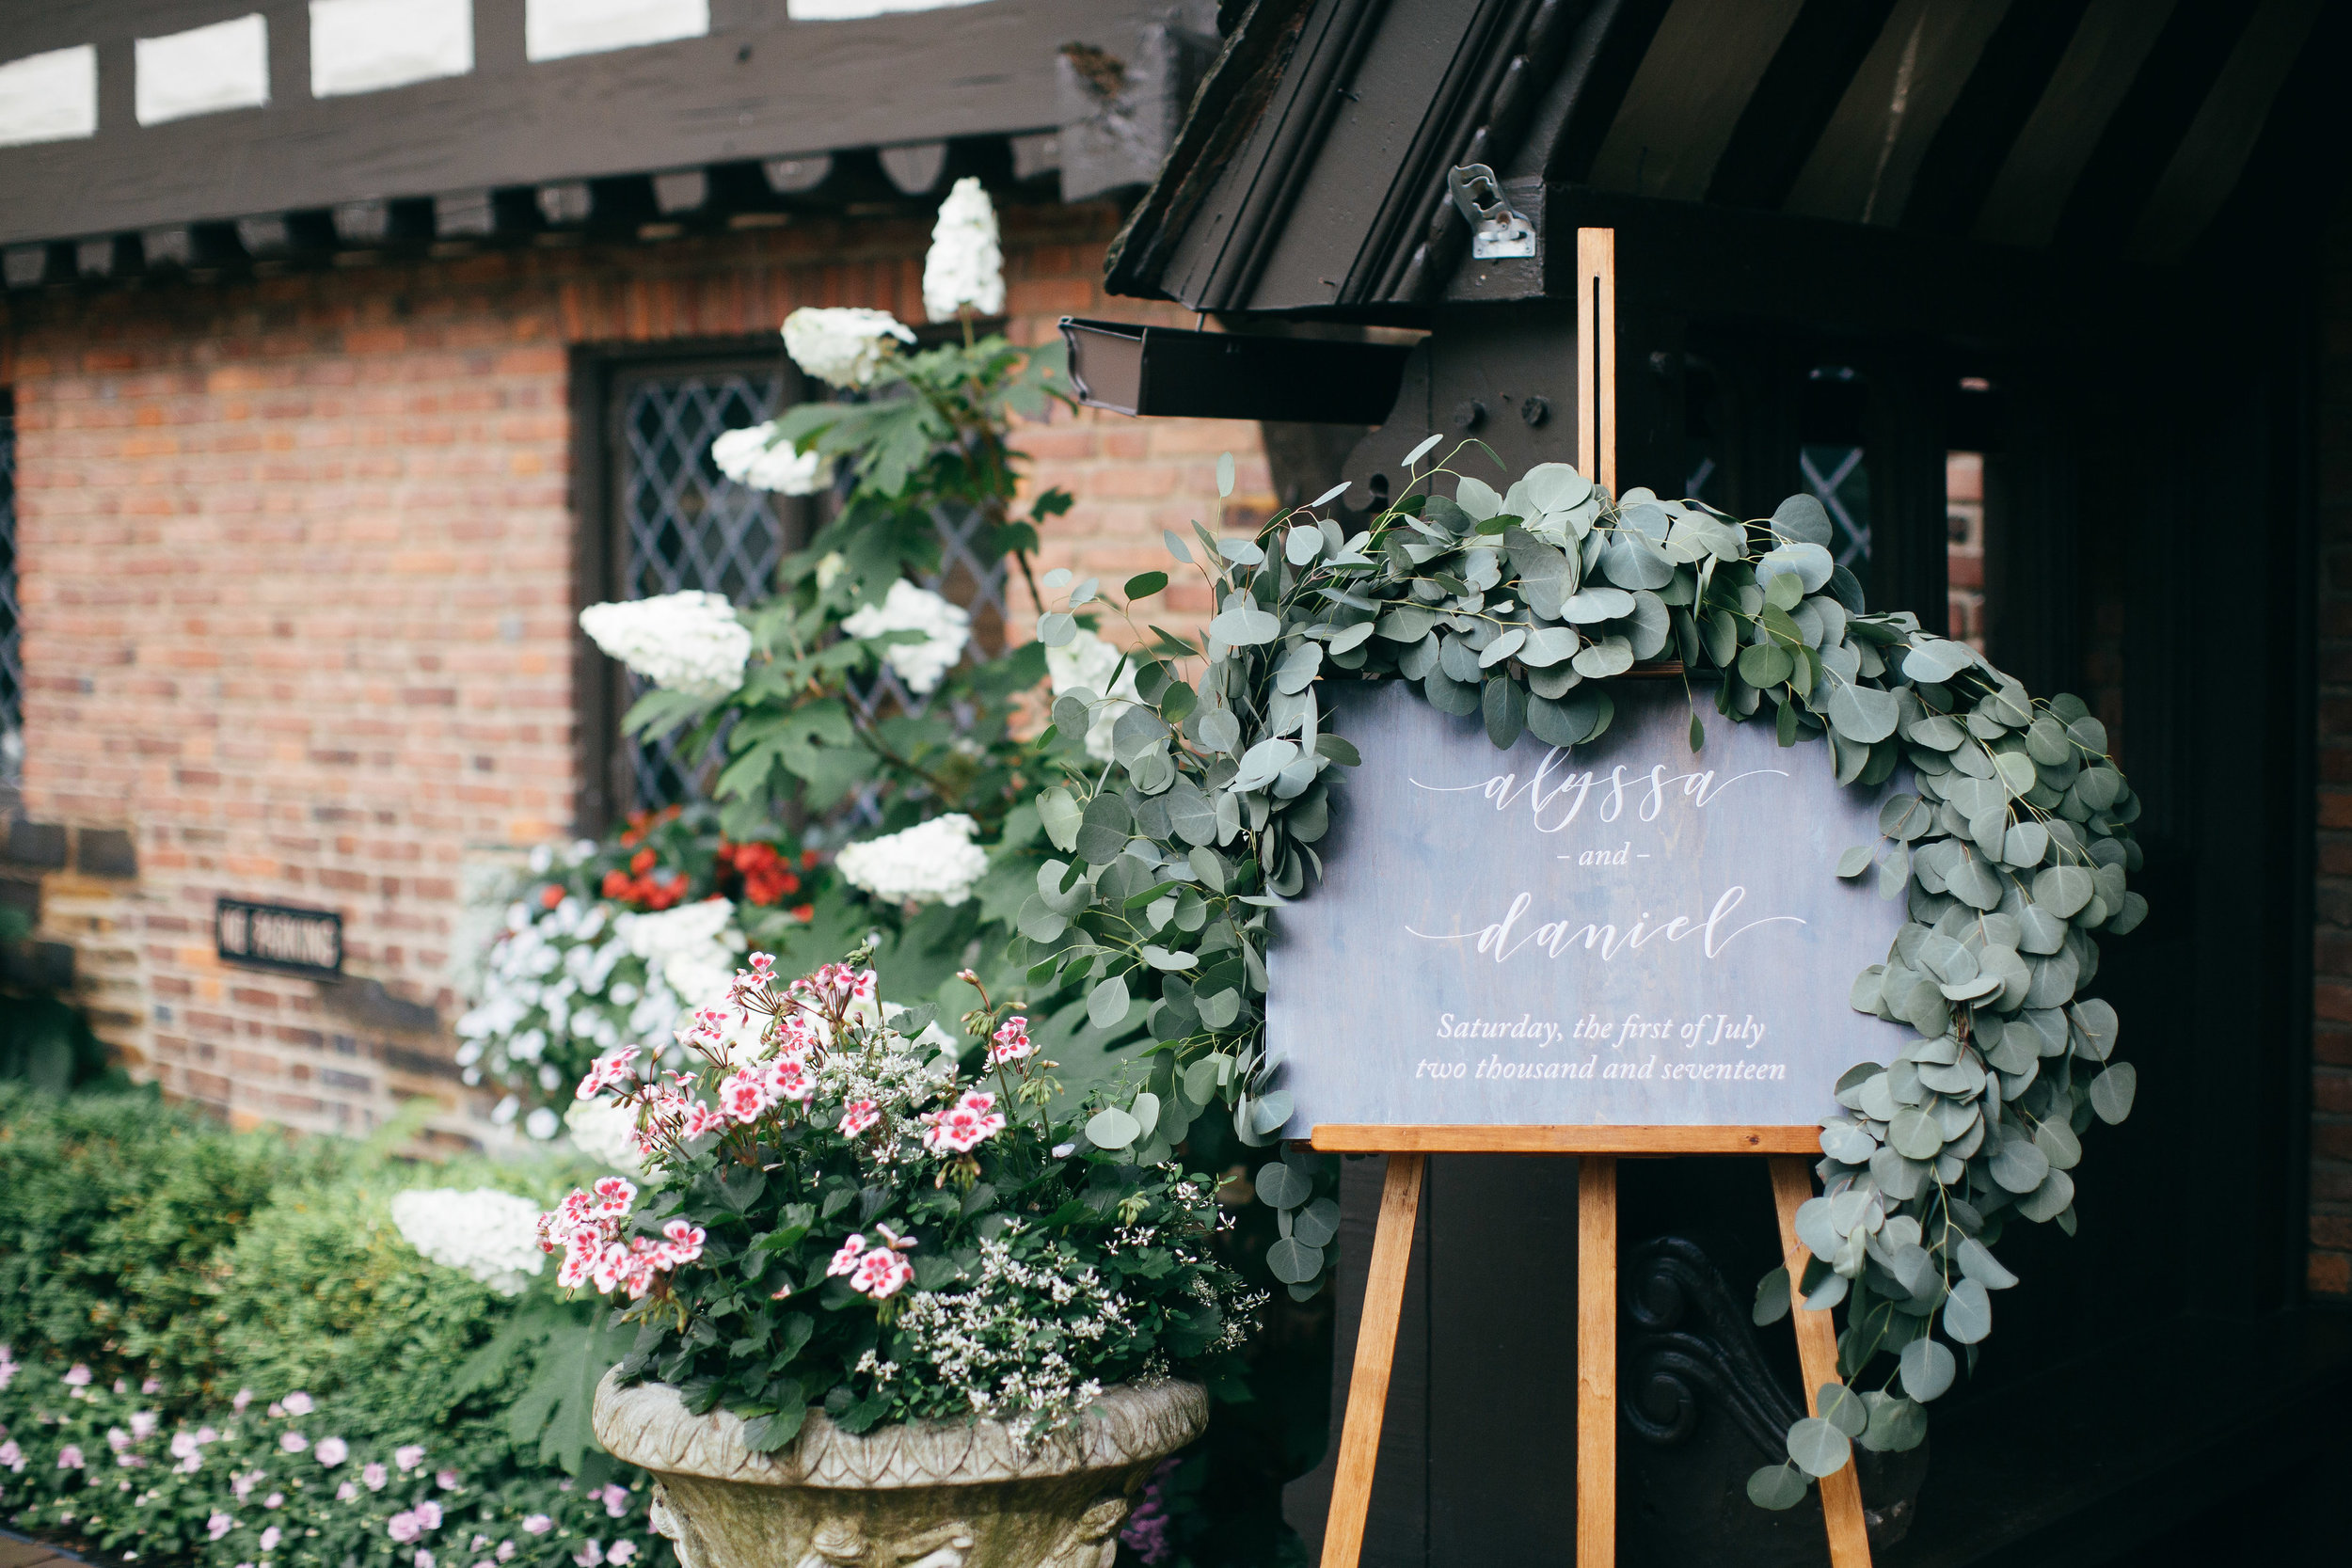 The Club at Hillbrook wedding entrance sign